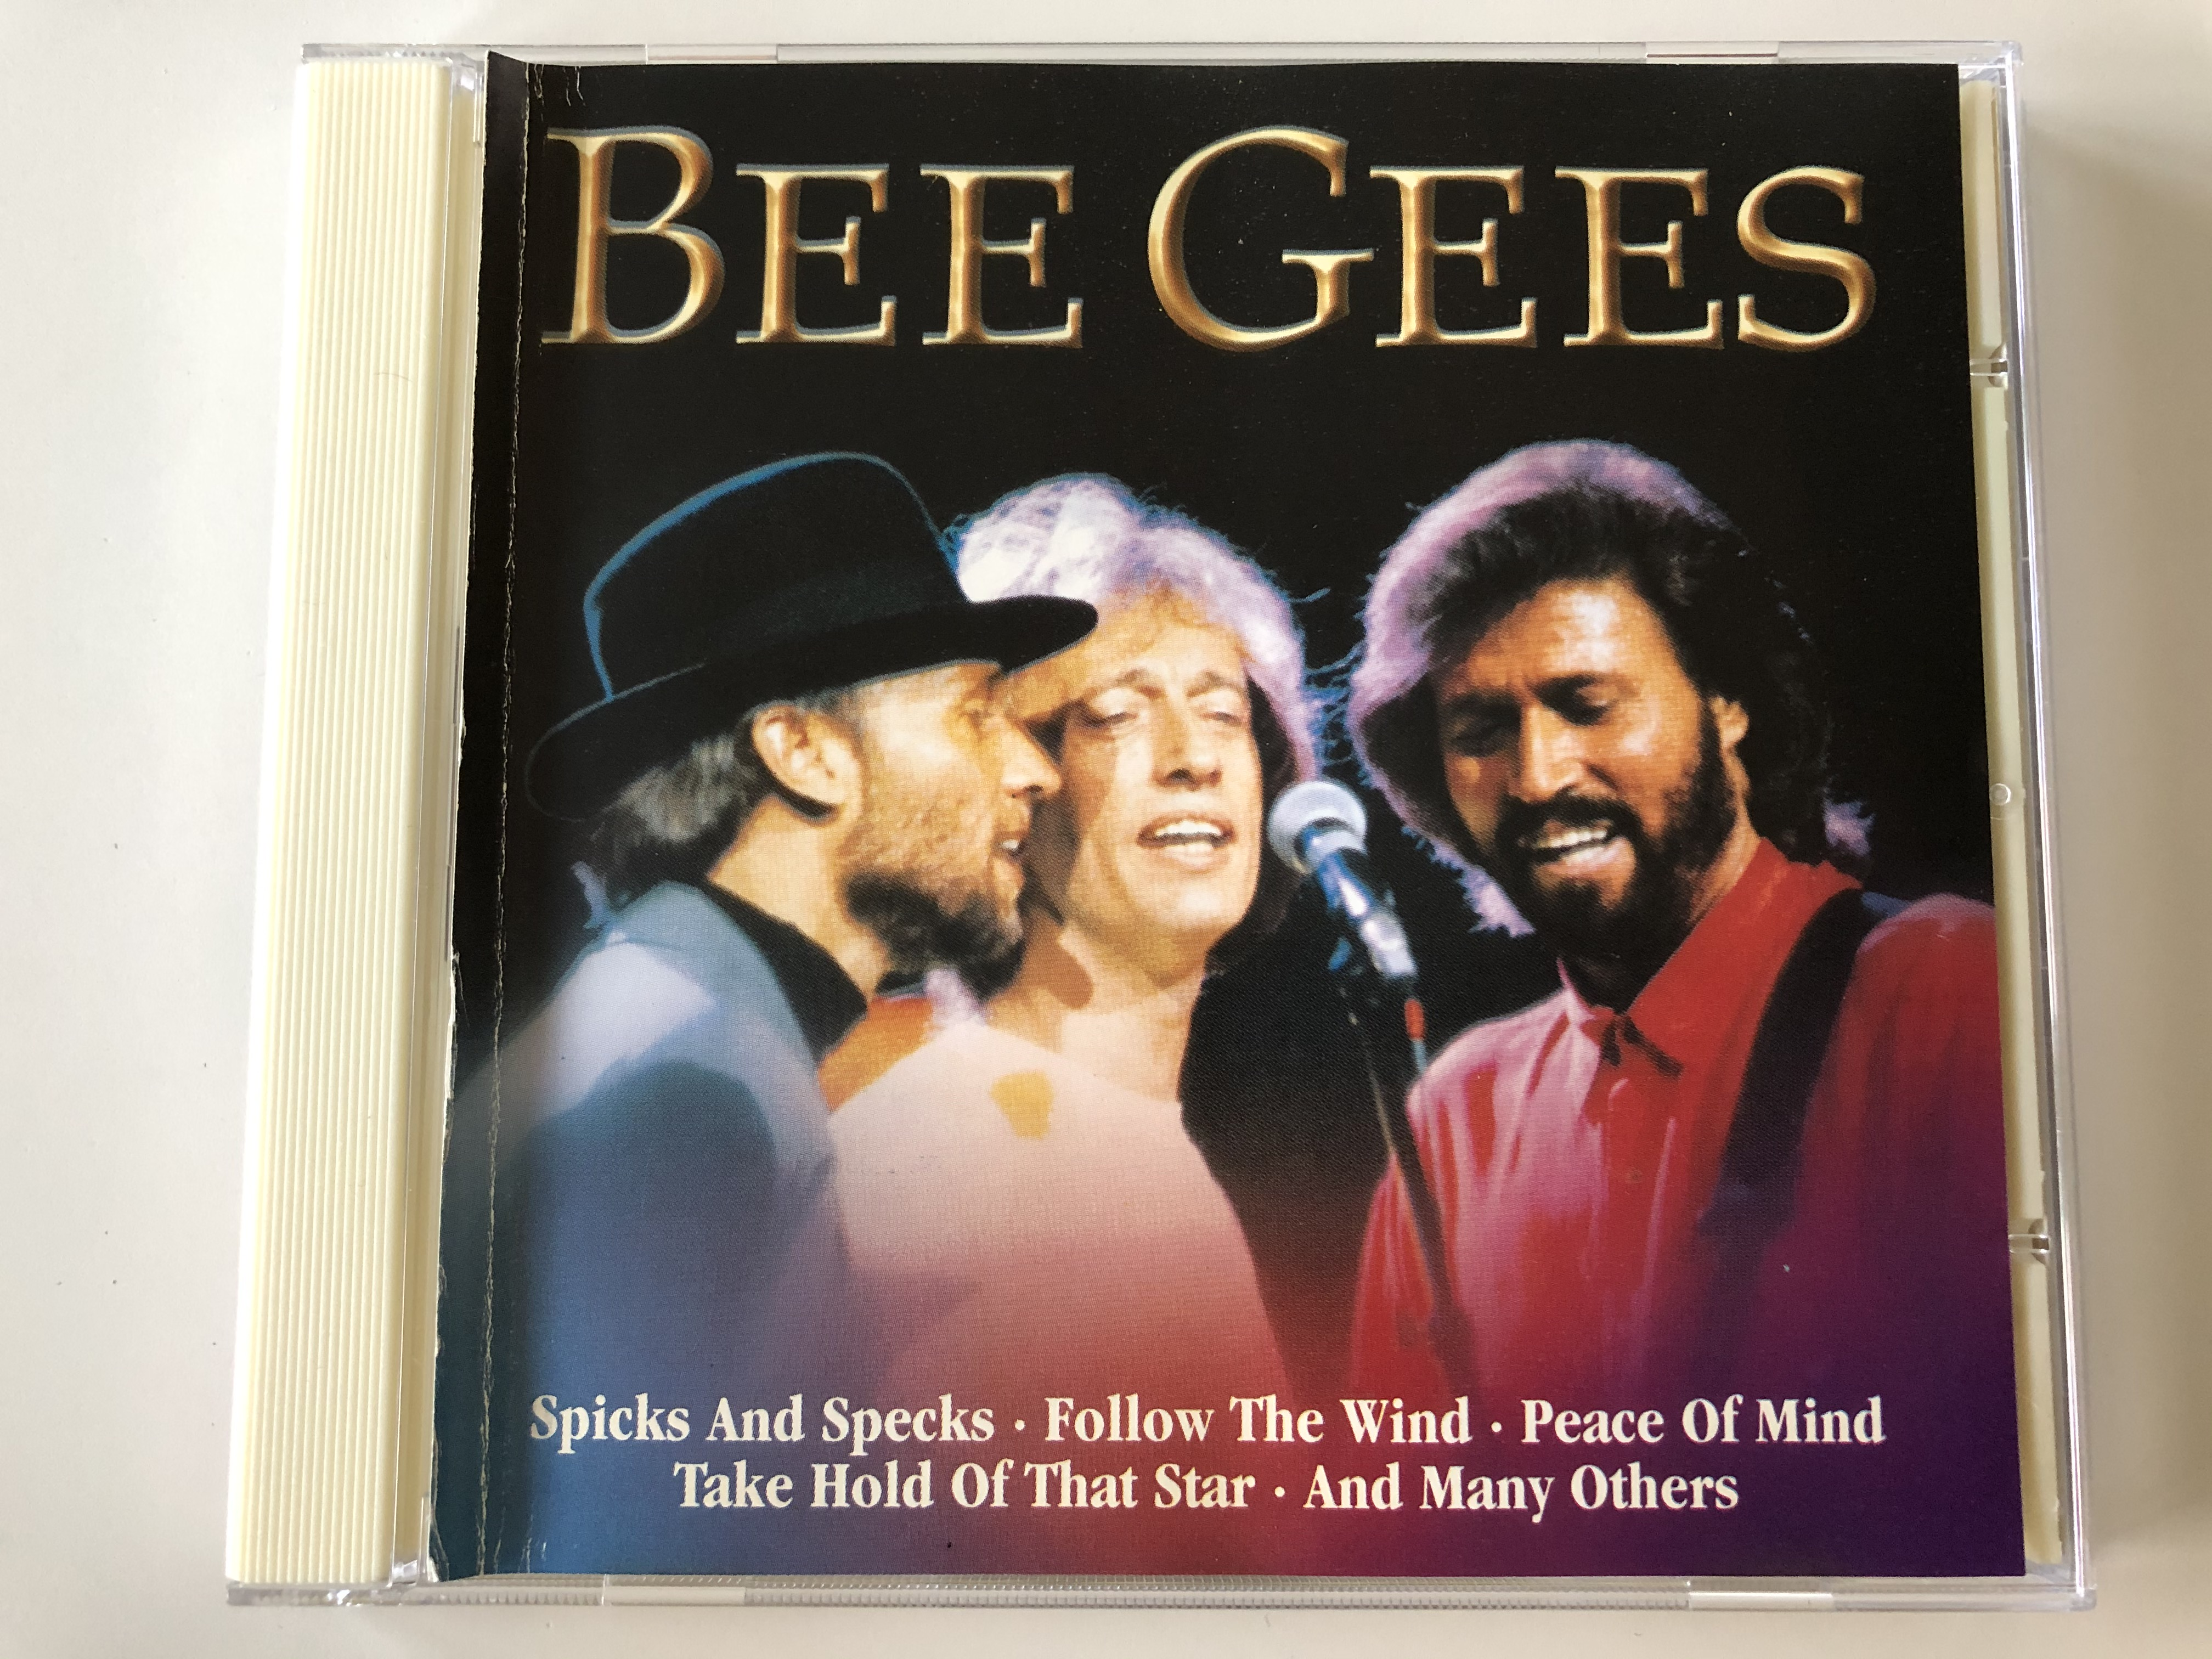 bee-gees-spicks-and-specks-follow-the-wind-peace-of-mind-take-hold-of-that-star-and-many-others-eurotrend-audio-cd-cd-157-1-.jpg